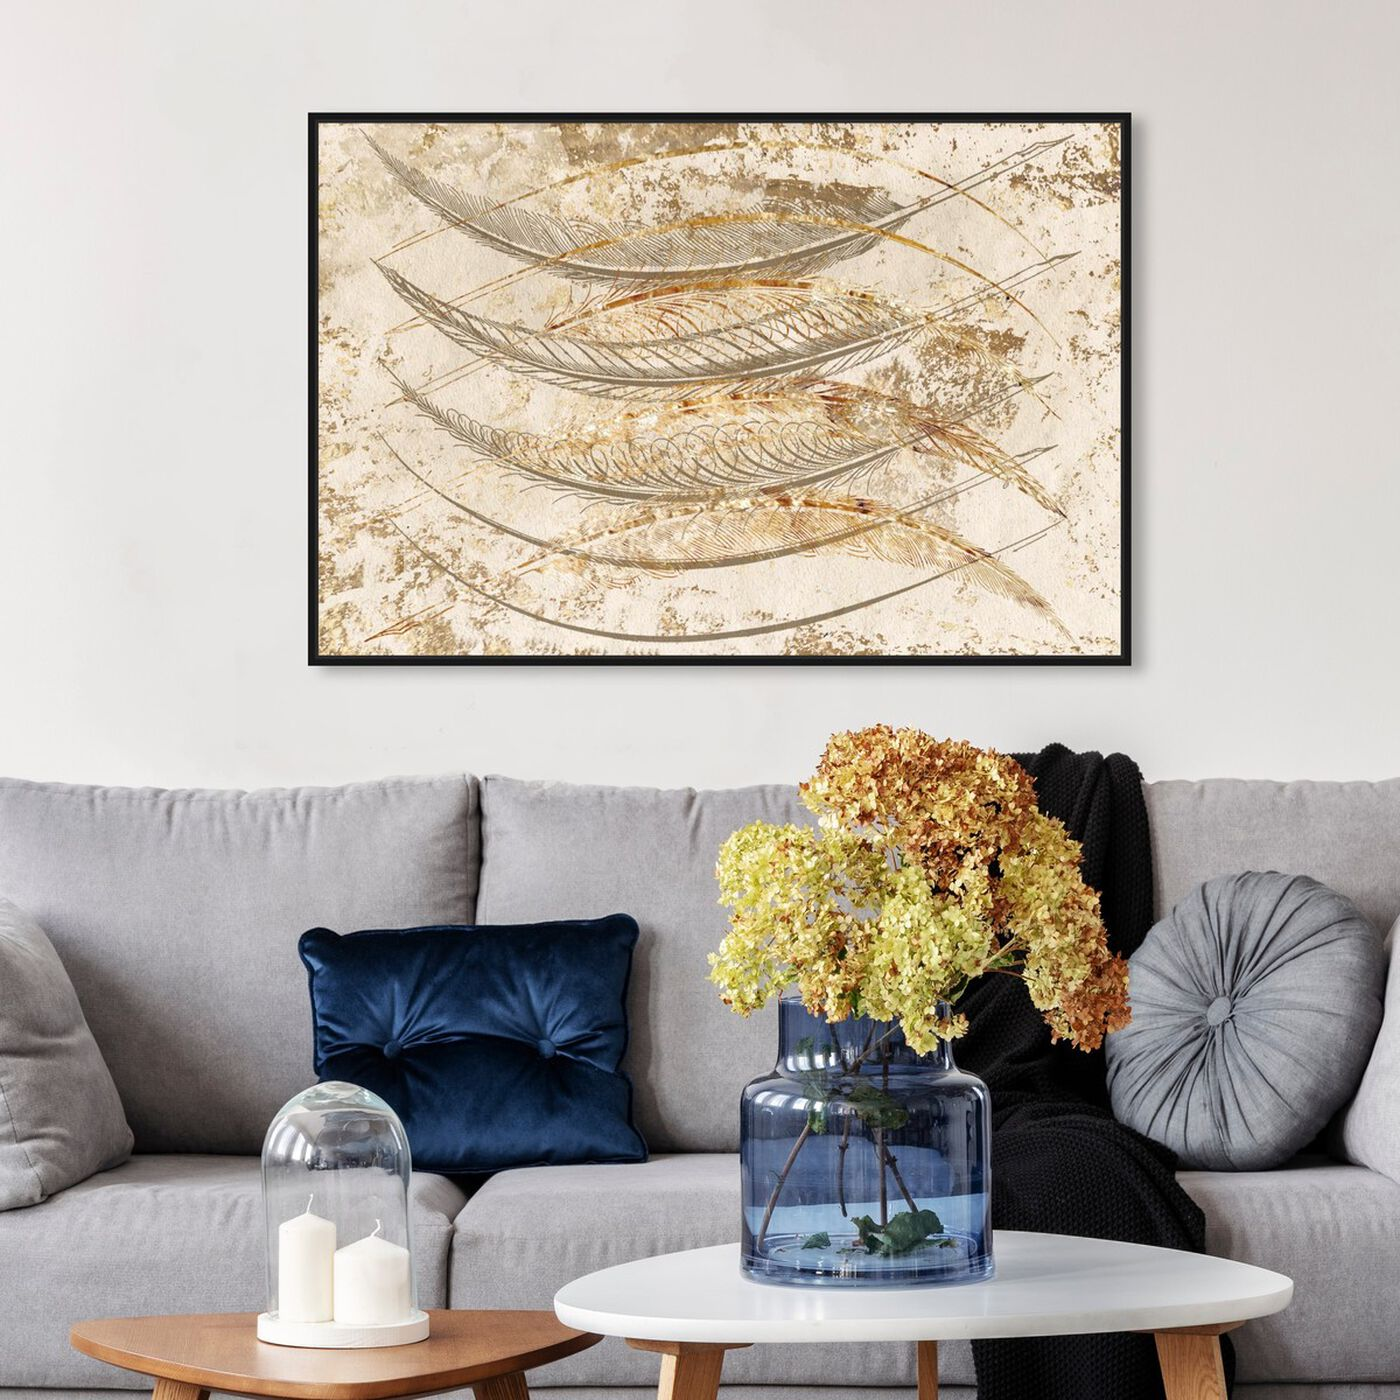 Hanging view of Gold Feathers featuring fashion and glam and feathers art.